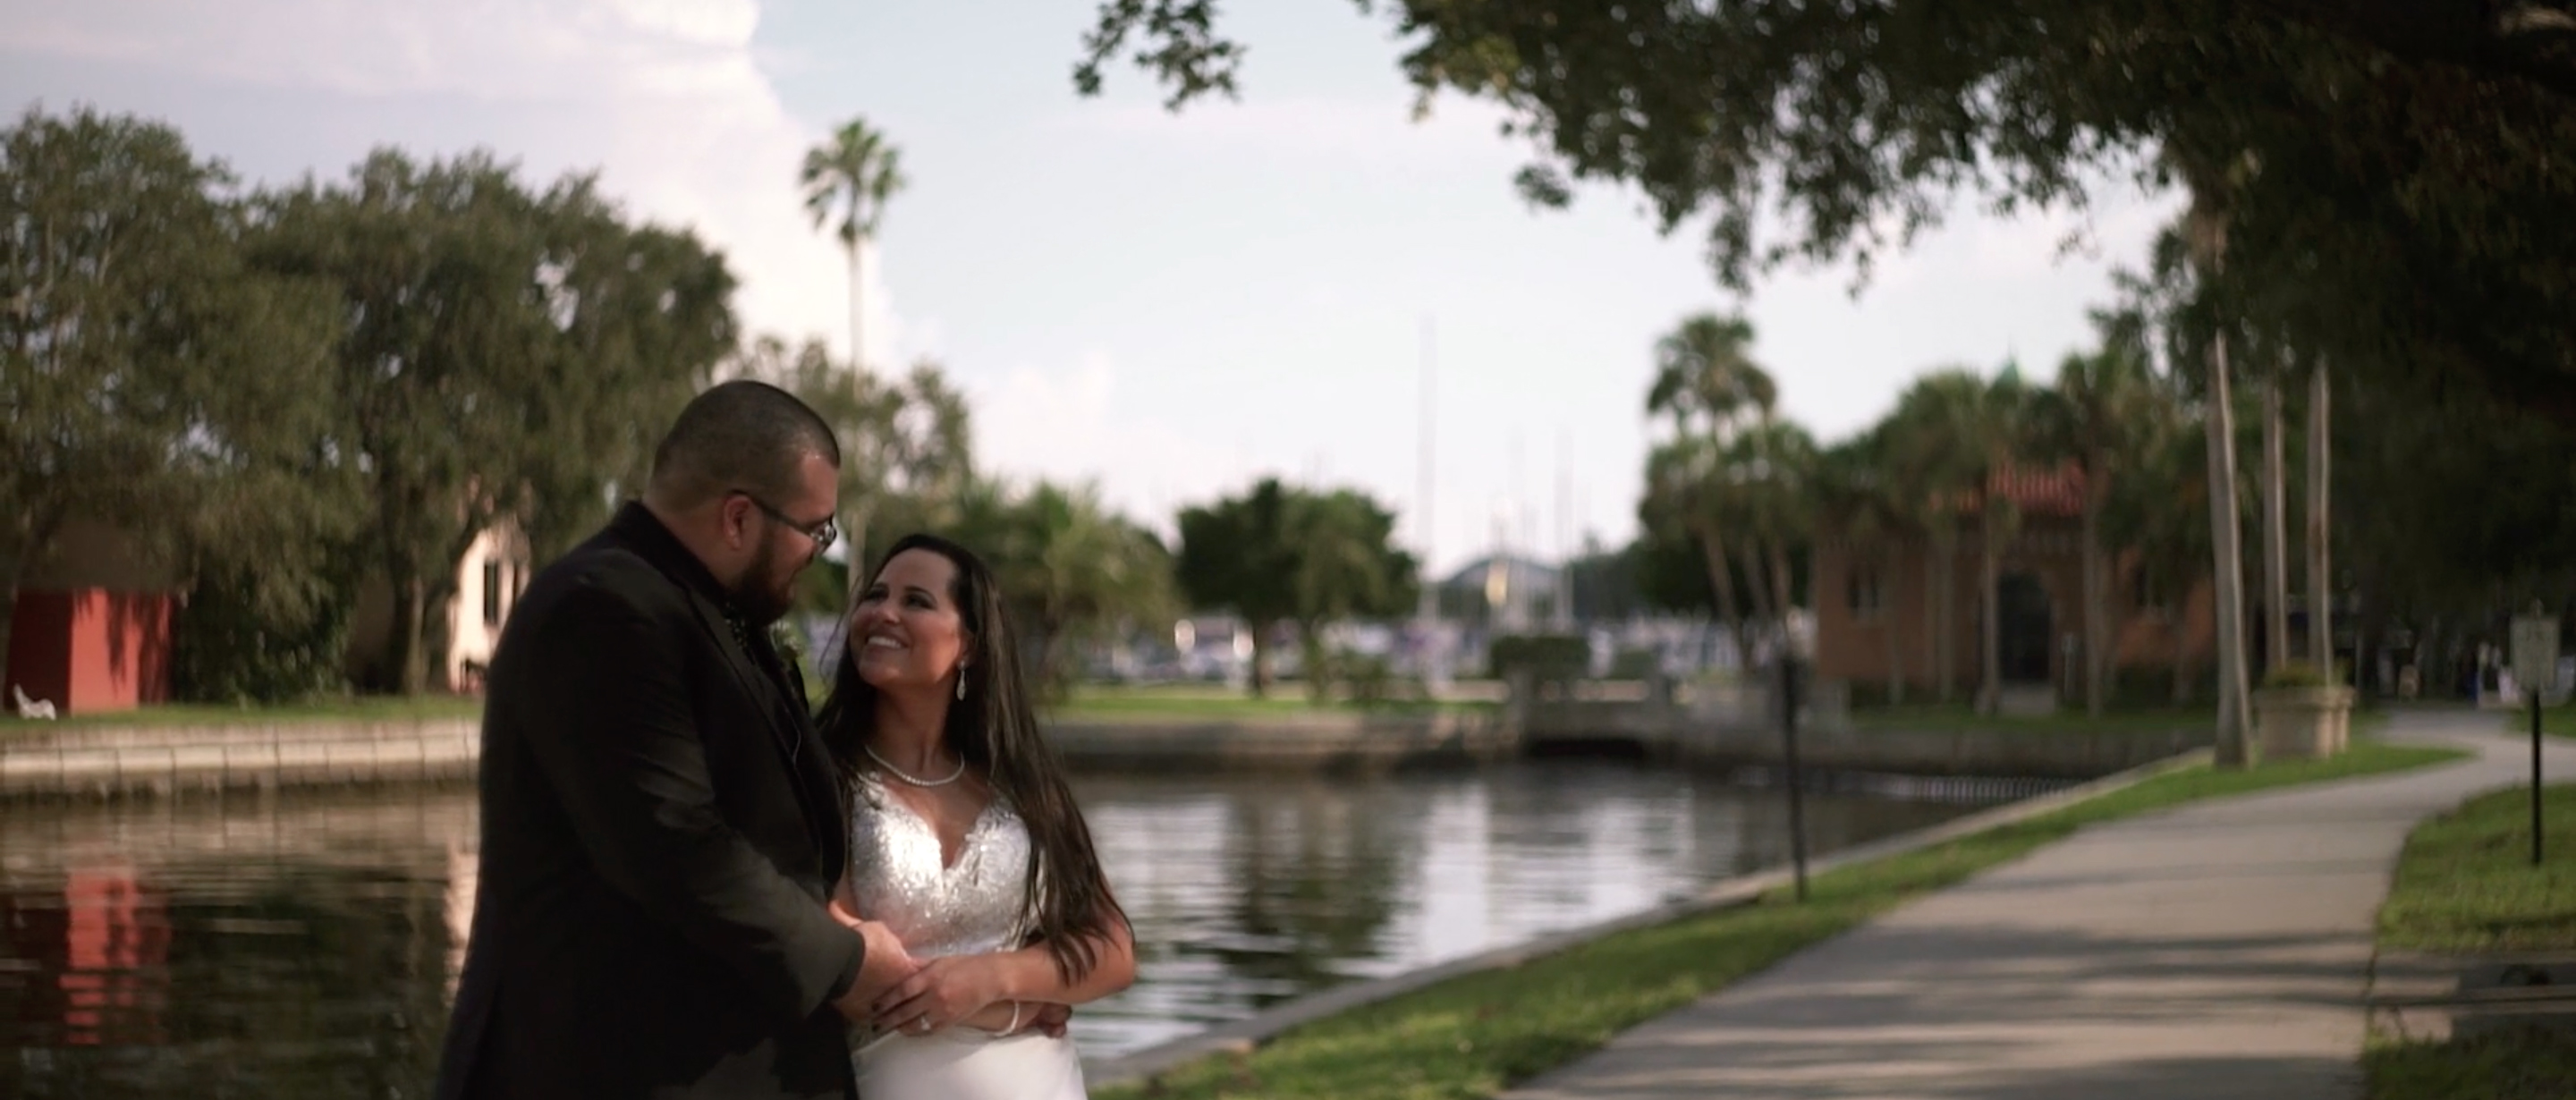 florida miami wedding videographer couple shoot 2